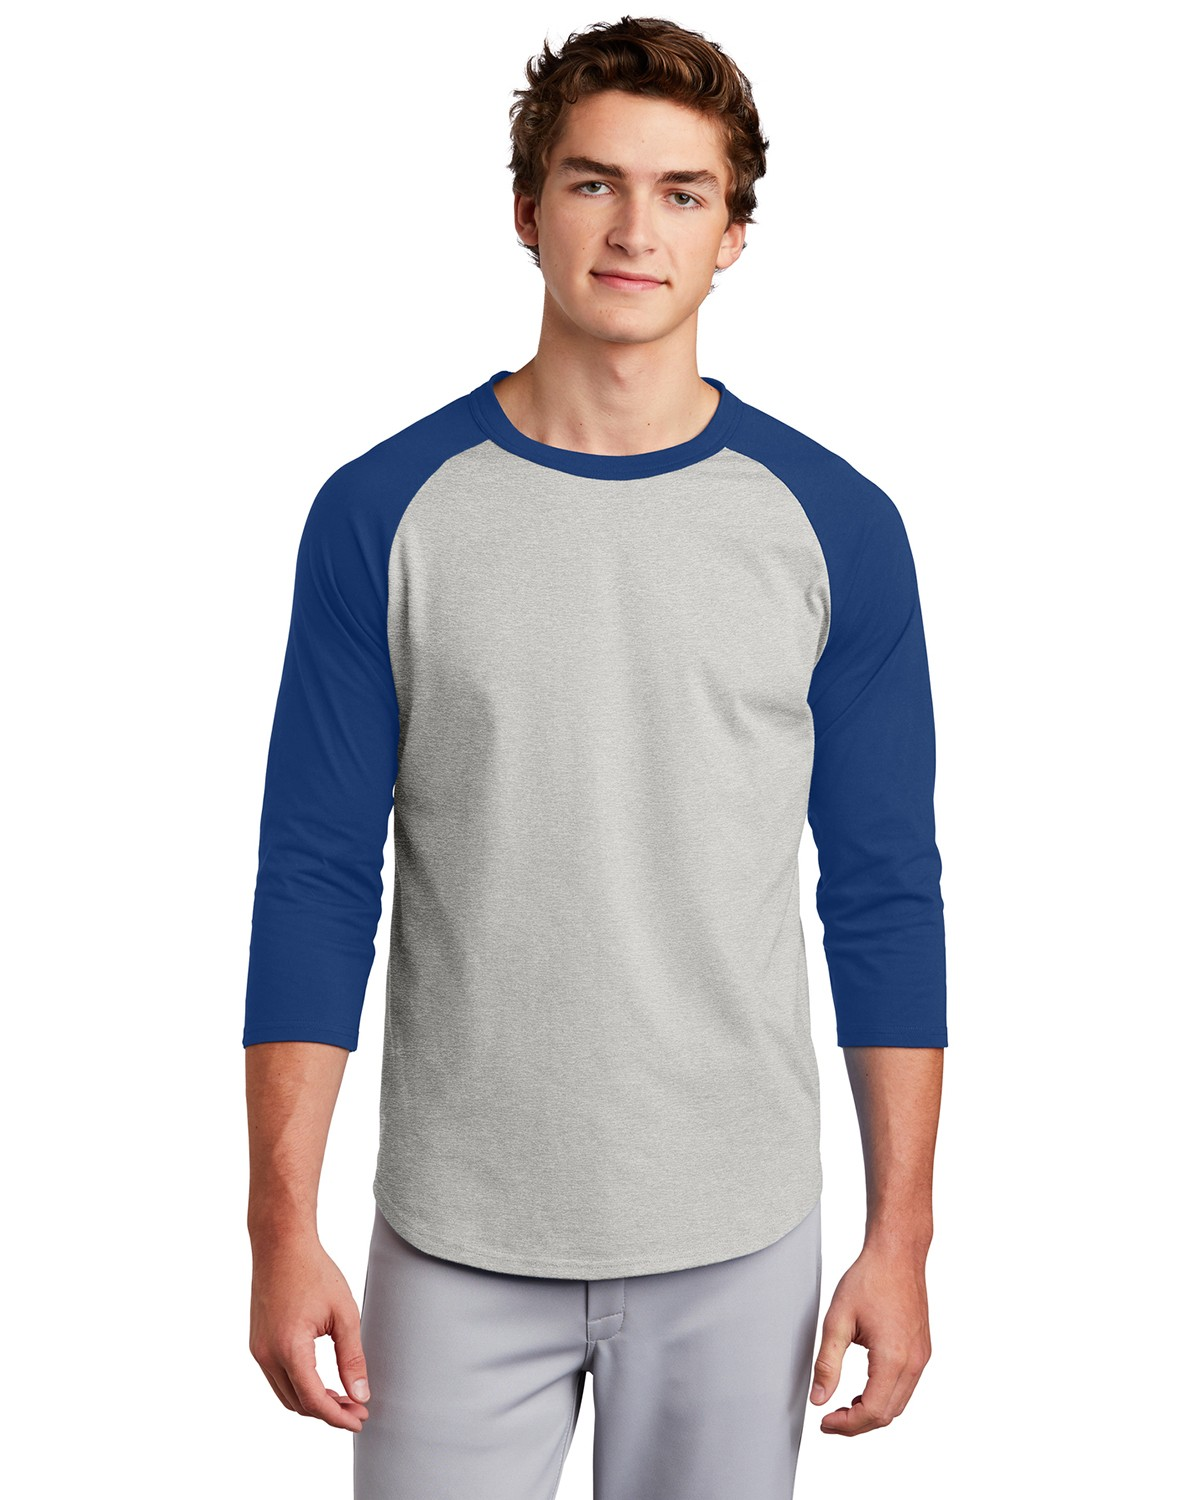 Sport-Tek T200 Colorblock Raglan Jersey - Heather Grey/Royal - XL T200